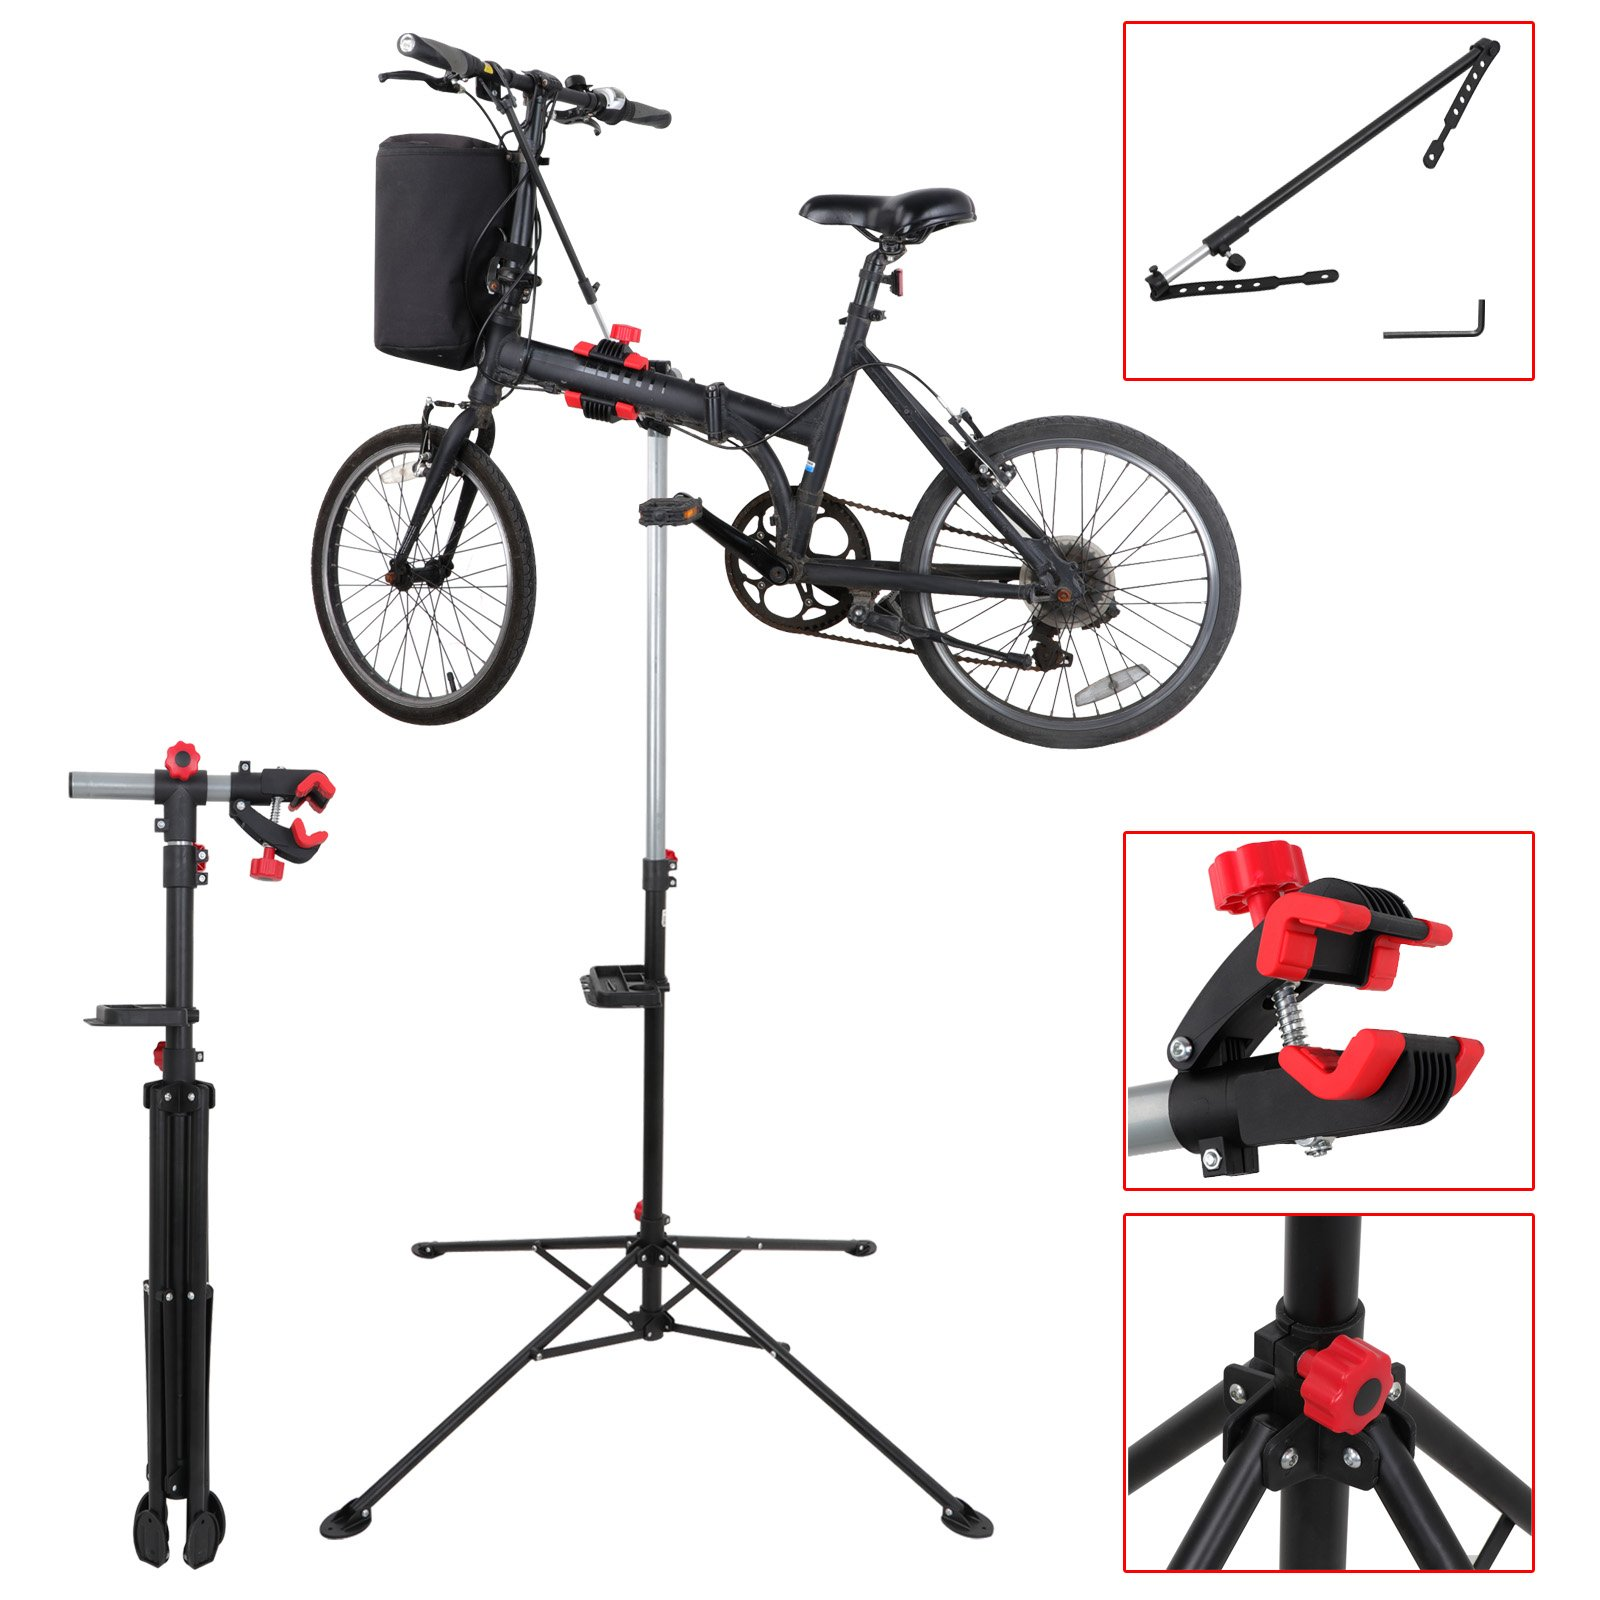 LEMY Pro Mechanic Bike Repair Stand Rack Adjustable 42.5'' to 74'' Workstand With Tool Tray, Telescopic Arm Cycle